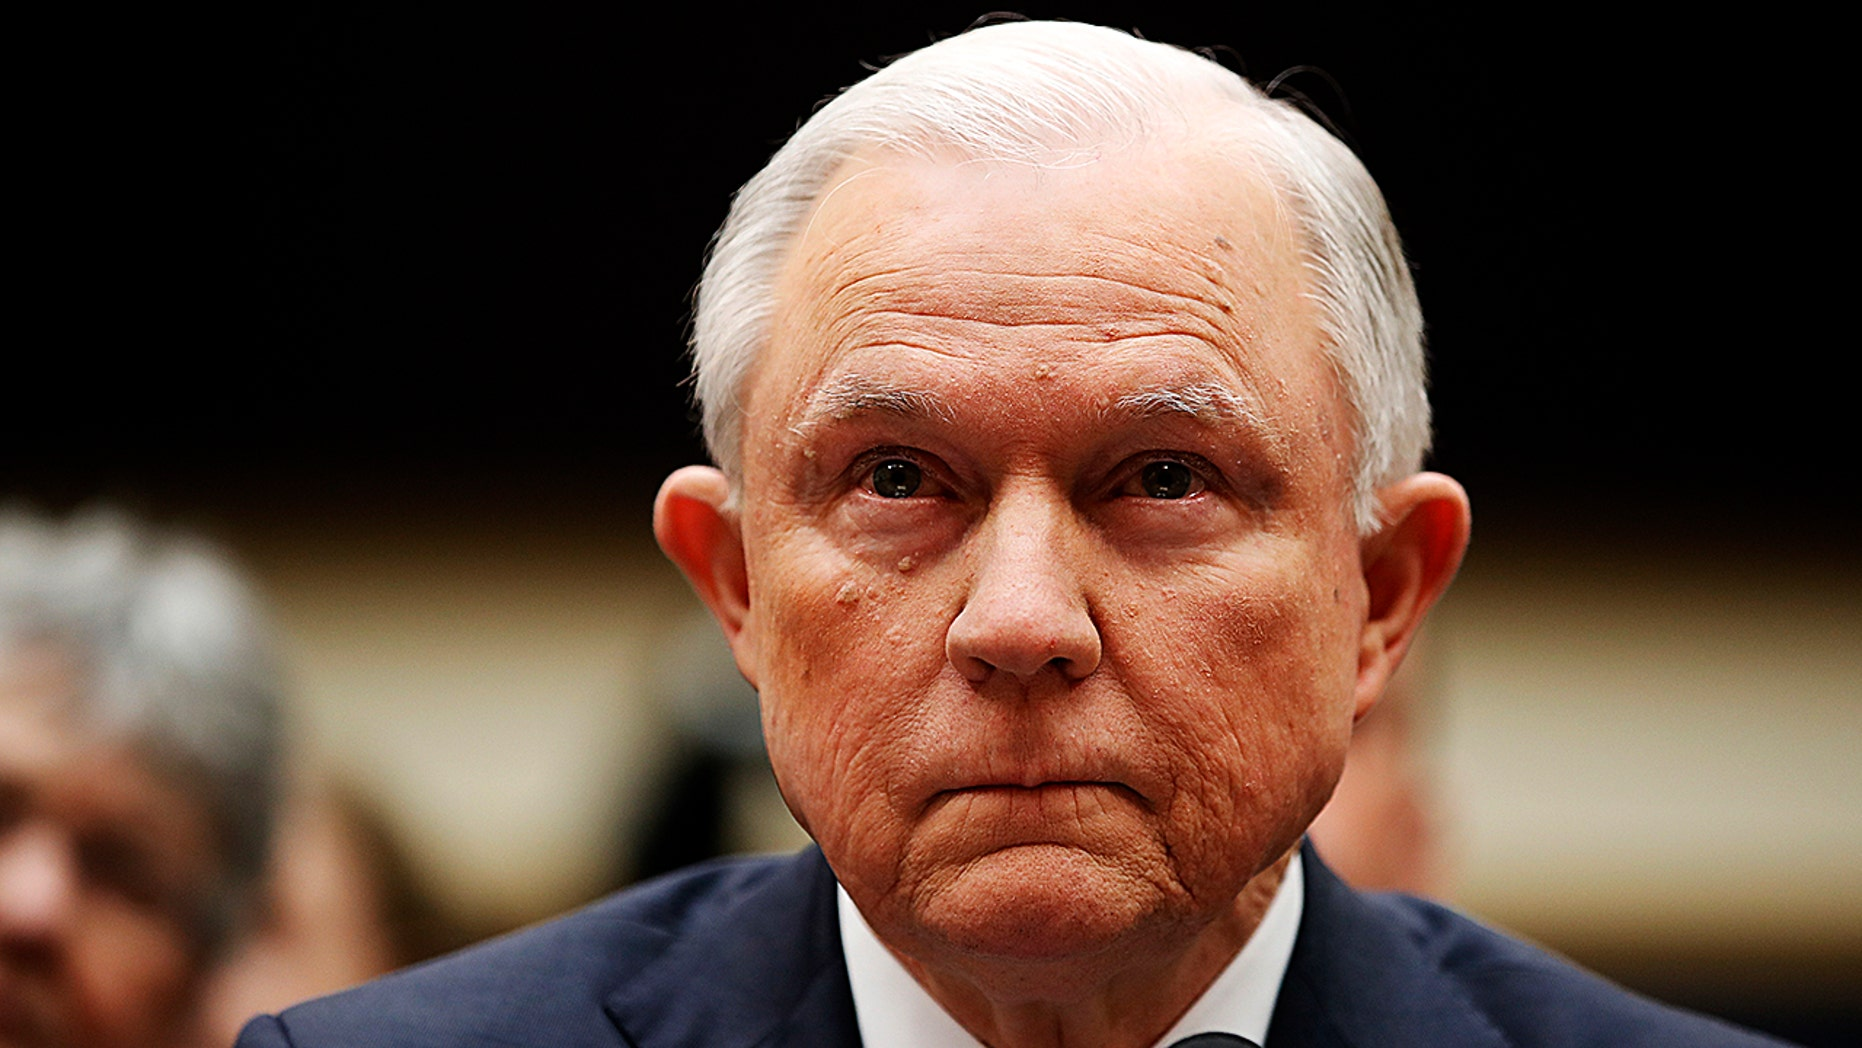 Attorney General Jeff Sessions listens at the beginning of a House Judiciary Committee hearing on Capitol Hill, Tuesday, Nov. 14, 2017 in Washington. (AP Photo/Alex Brandon)